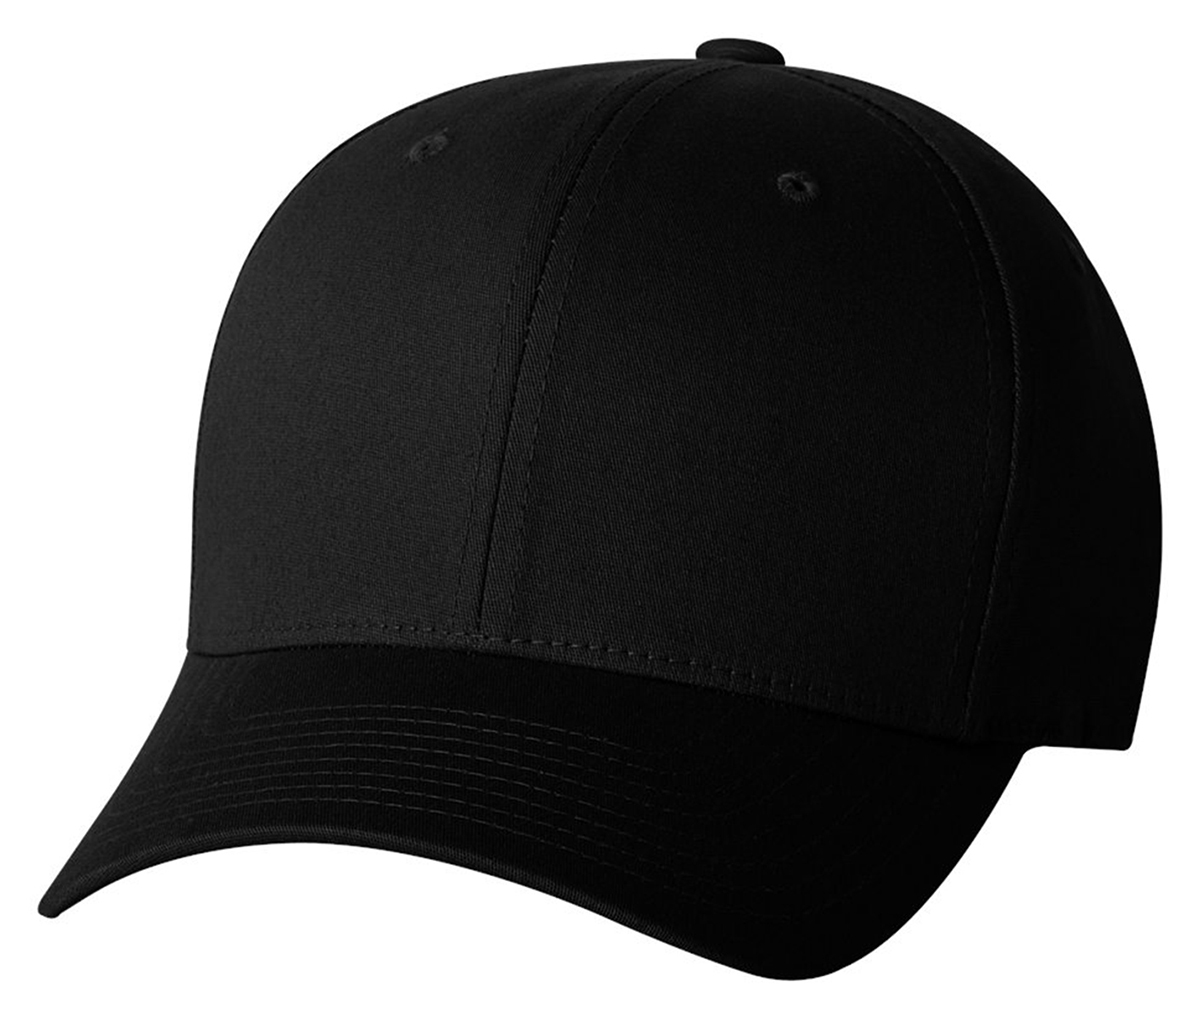 PLAIN BASEBALL FITTED CAP FLEXFIT 5001 SOLID BLANK FLEX FIT HAT YUPOONG  SIZED 57a247c92fb